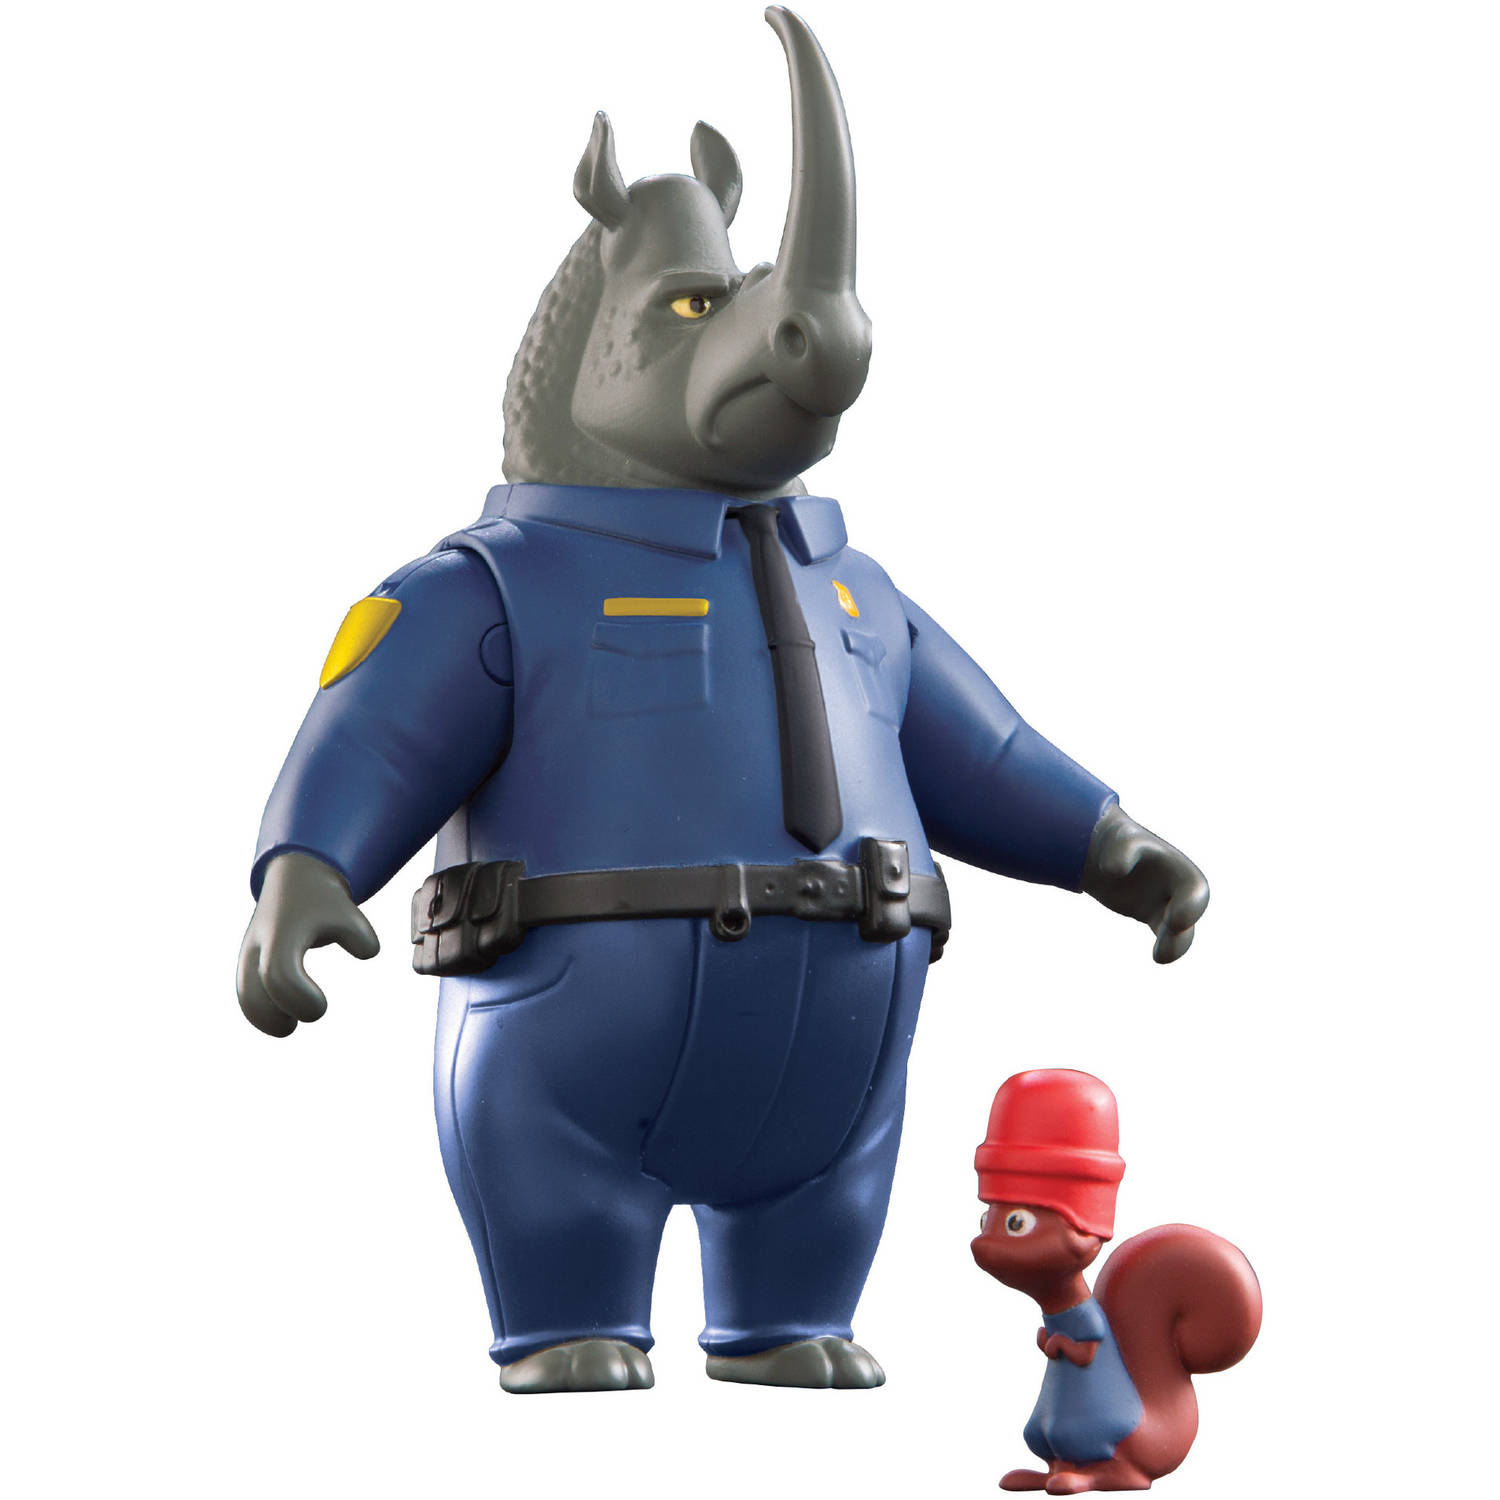 Zootopia McHorn and Safety Squirrel Small figure